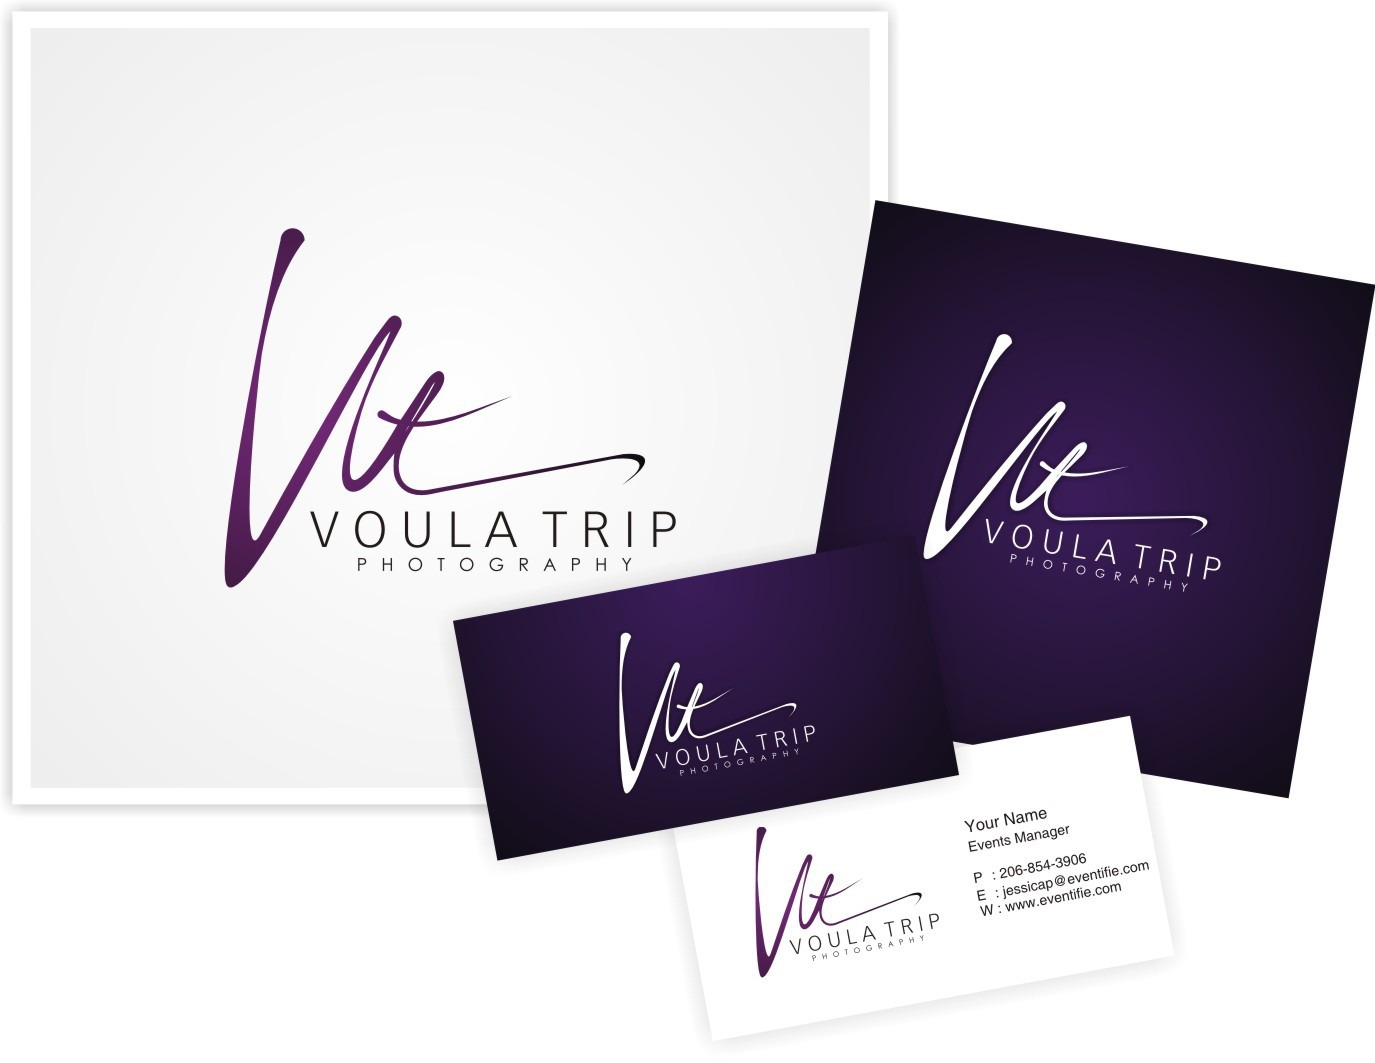 Create the next logo for Voula Trip Photography